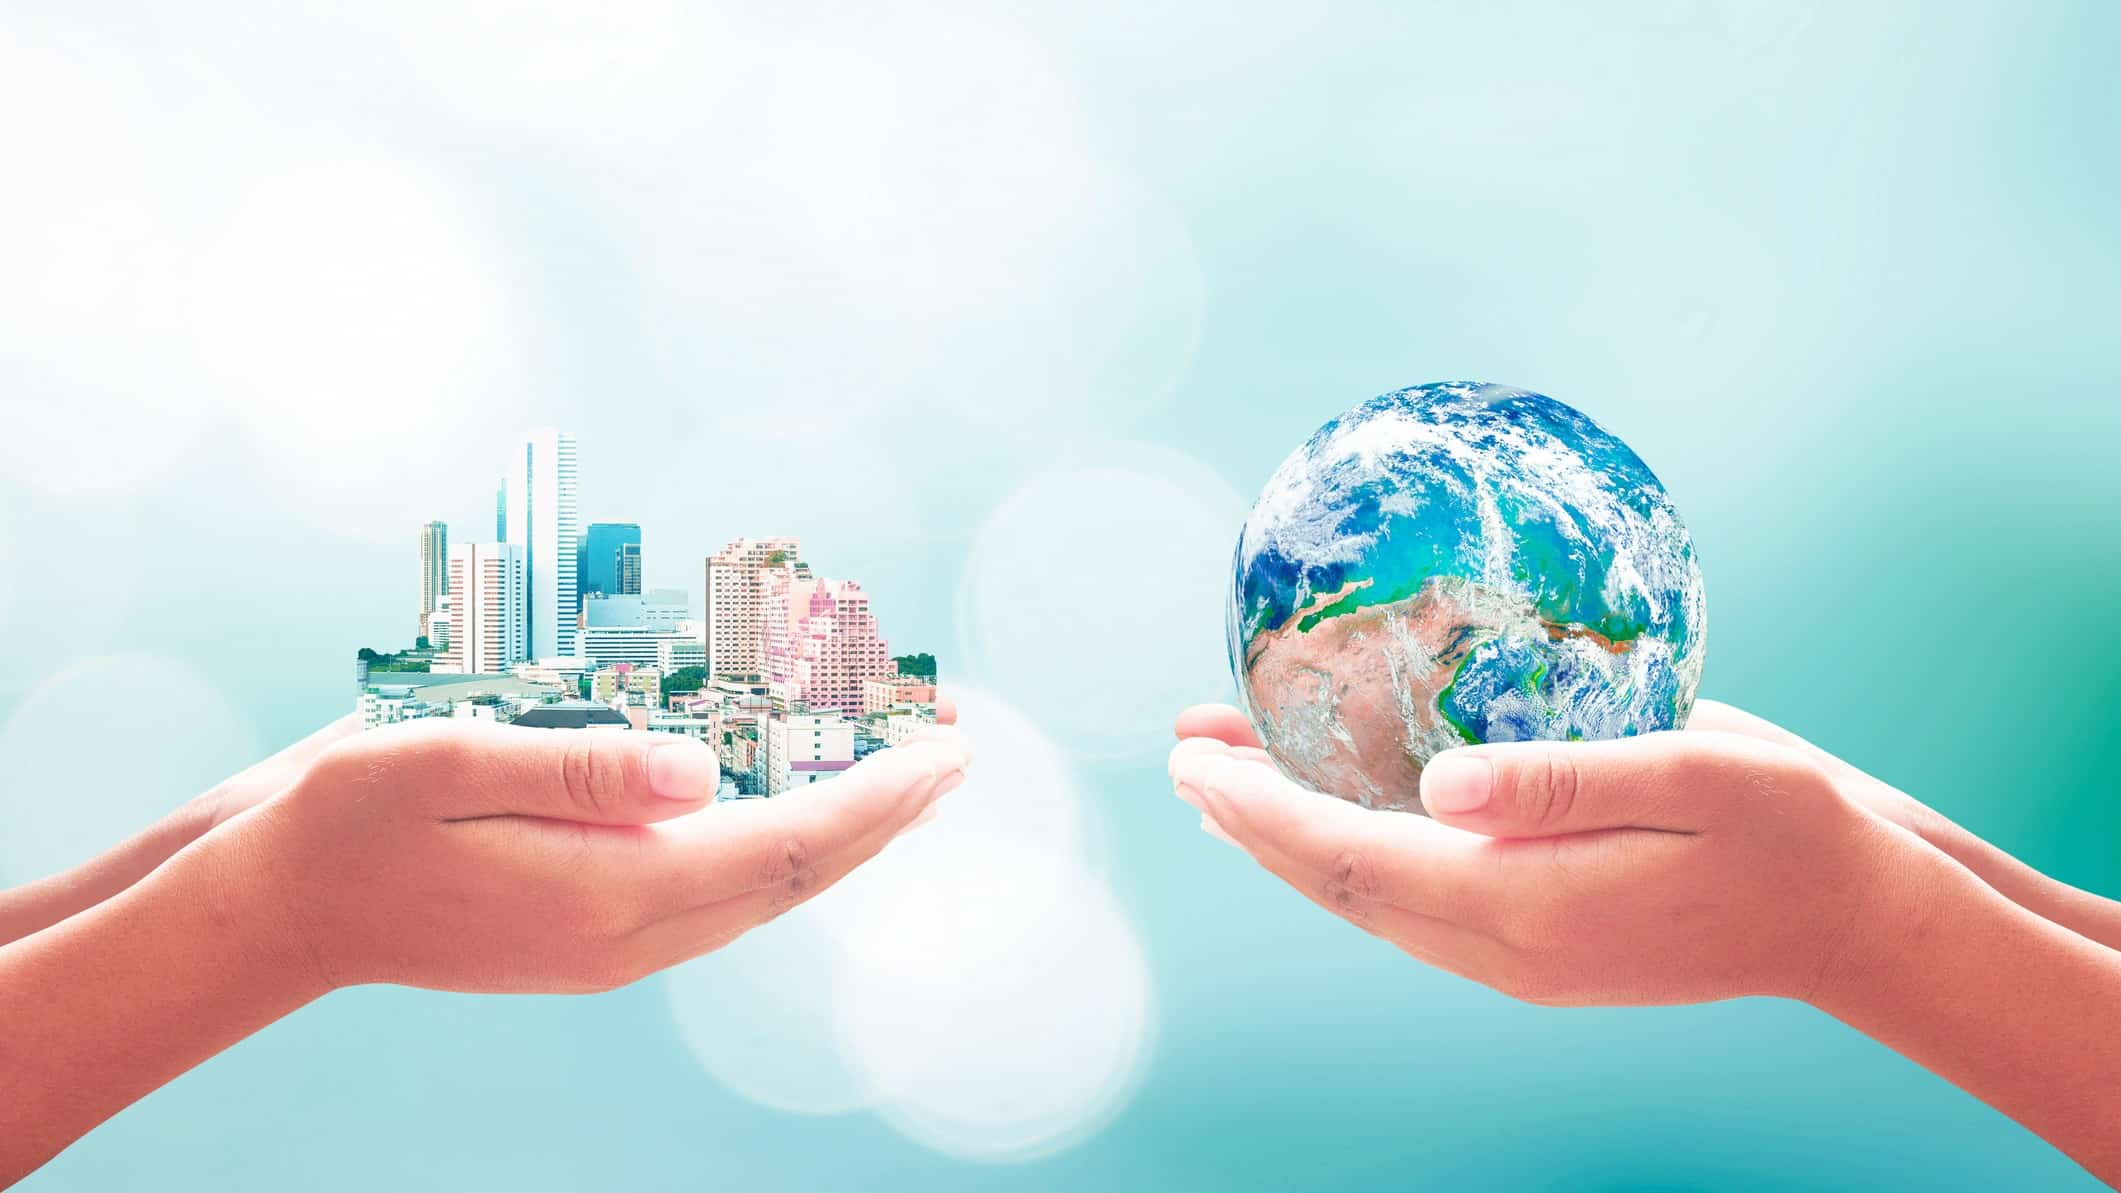 world's biggest companies represented by one person holding cityscape and another holding earth in hands